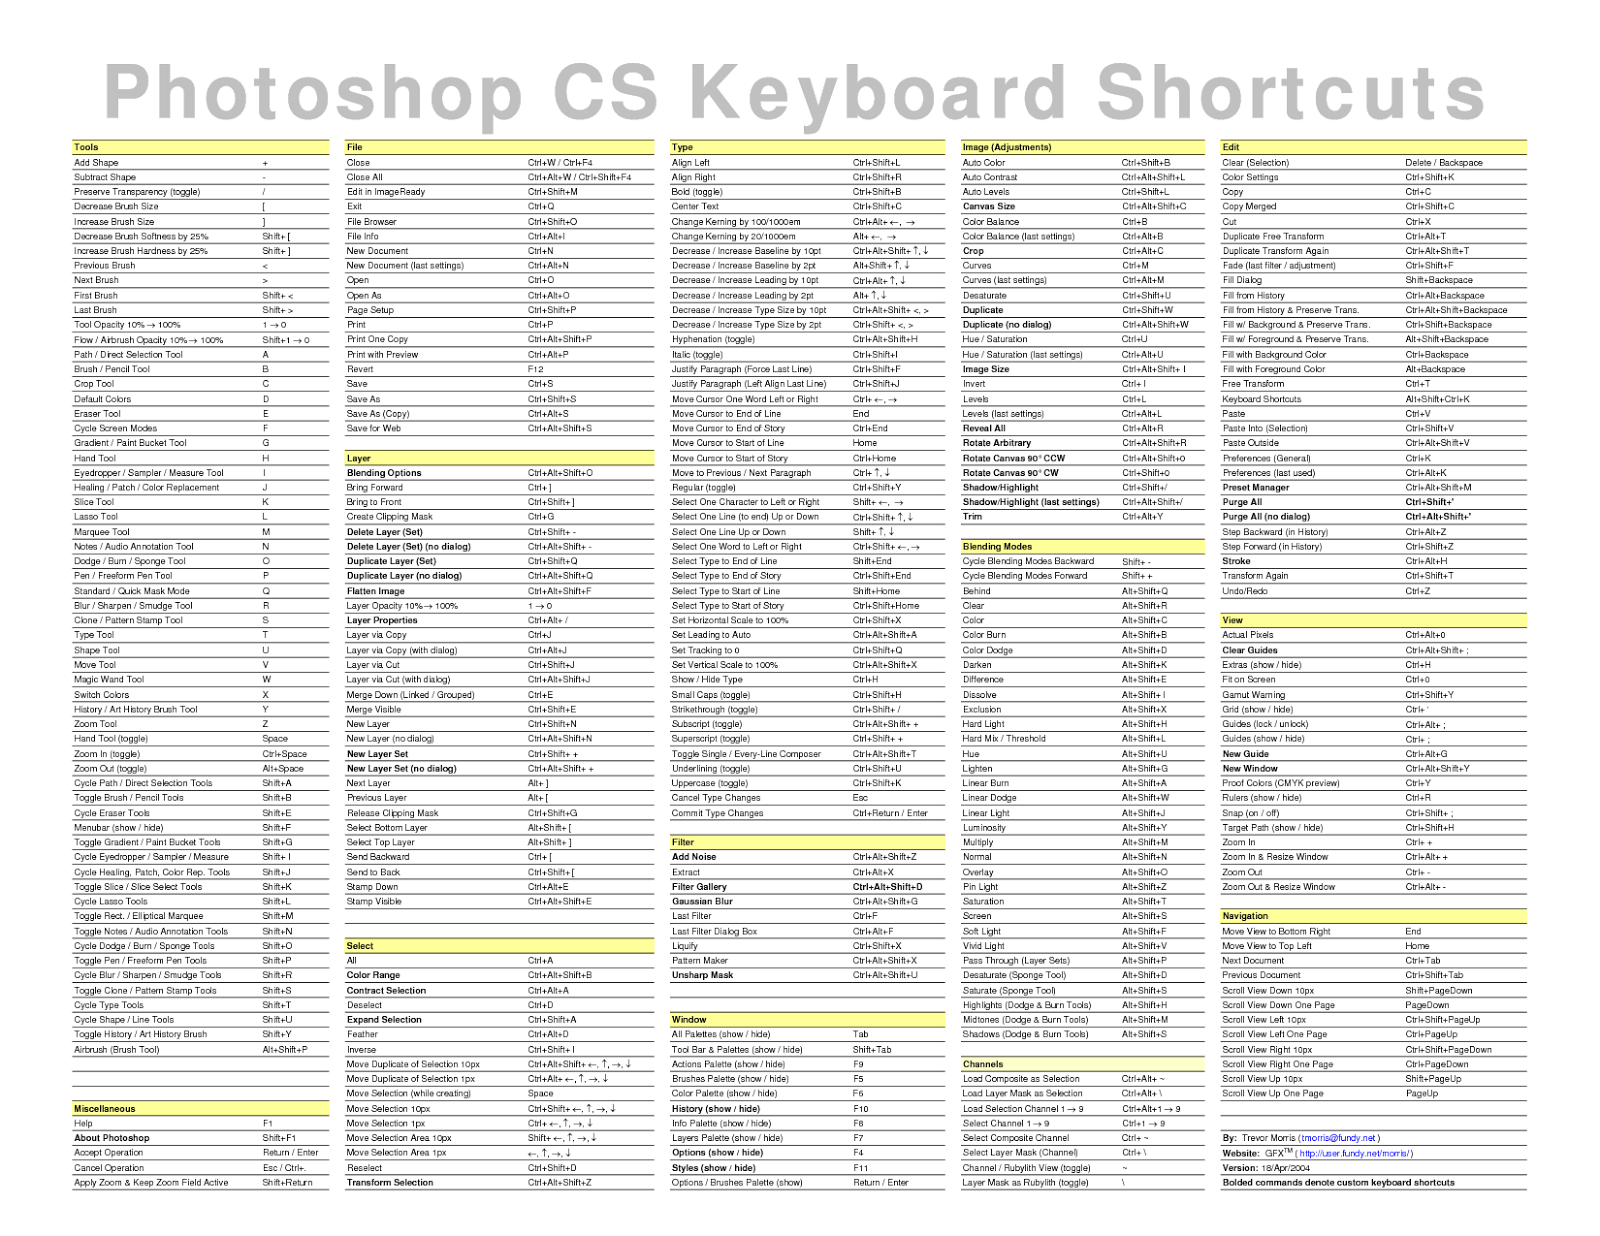 photography addiction keyboard shortcuts for photoshop secret for success manual flash photography tips manual flash photography cheat sheet